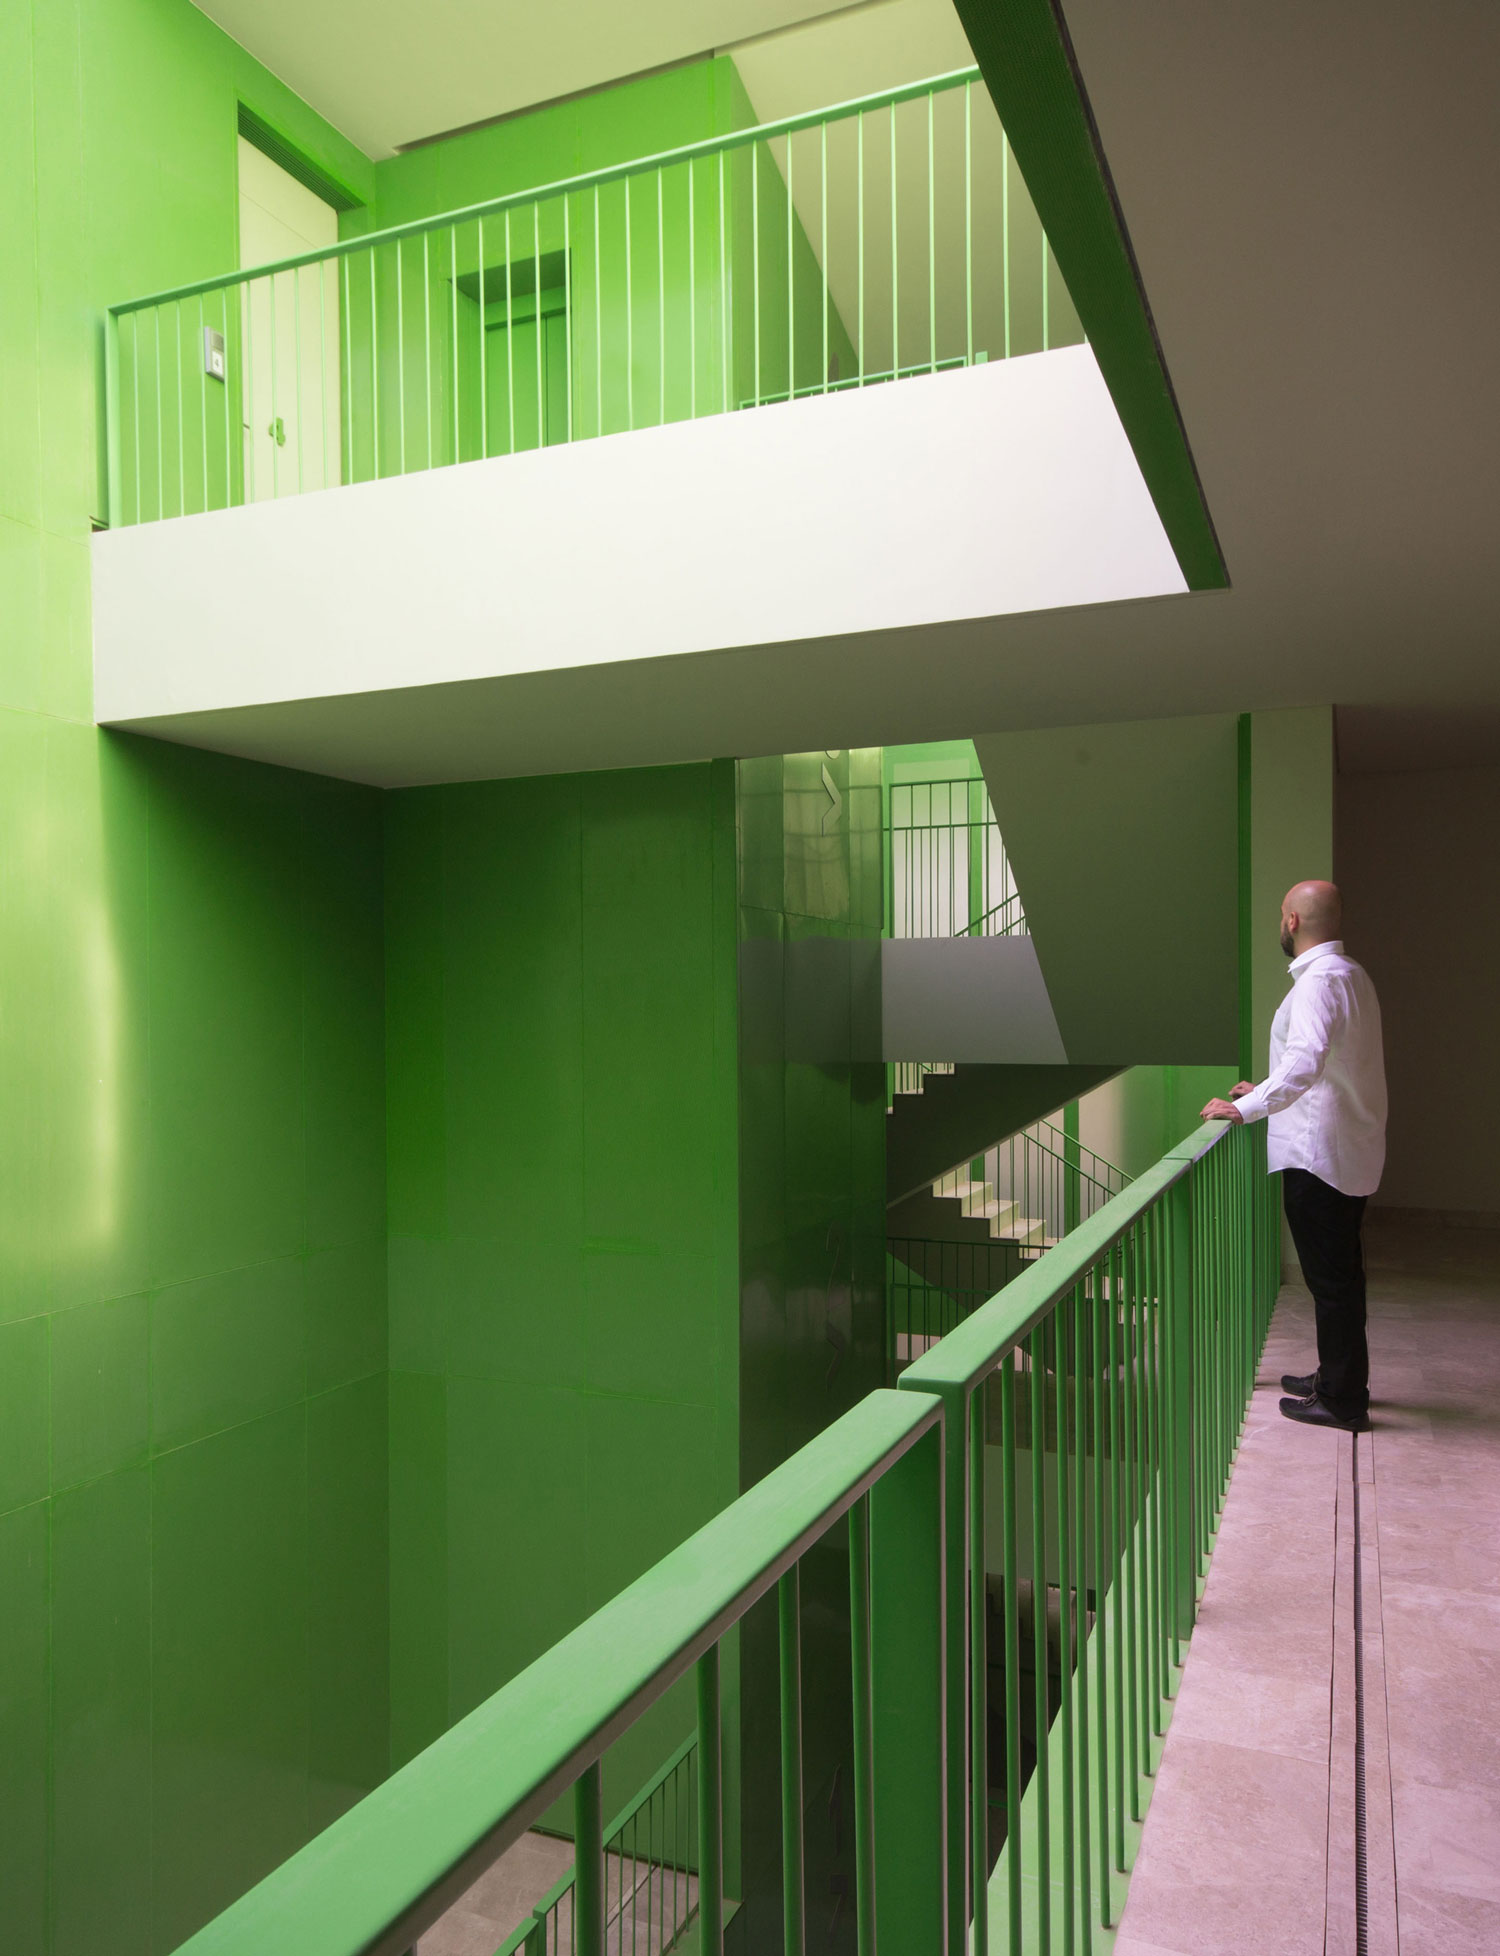 Goethe Institute Temporary Premesis by FAR Frohn Rojas | Yellowtrace